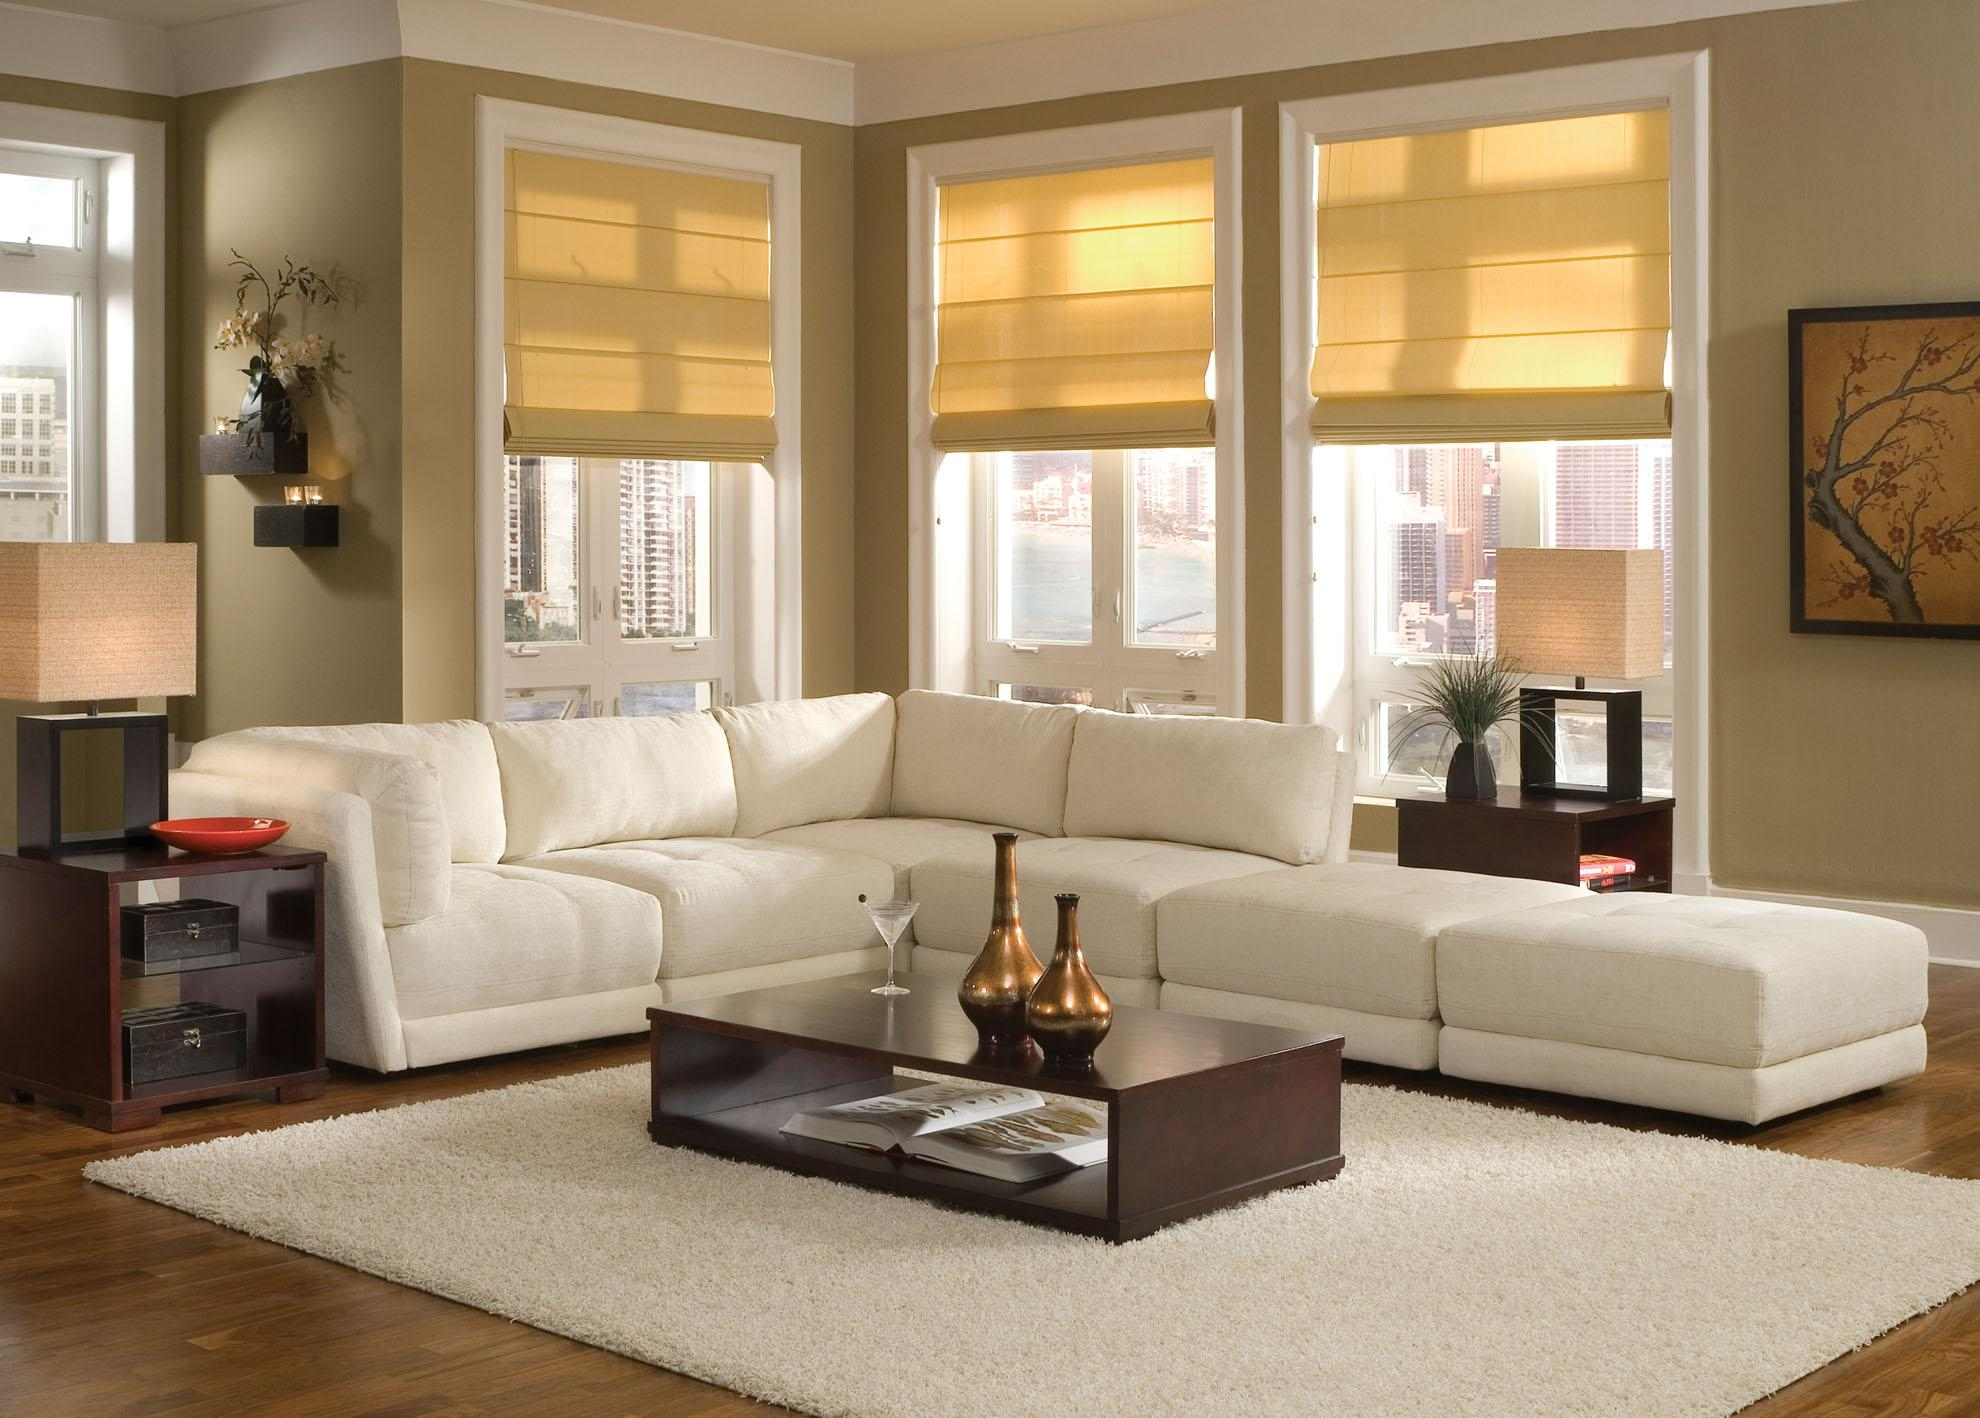 White Sofa Design Ideas & Pictures For Living Room With Regard To Decorating With A Sectional Sofa (Image 15 of 15)